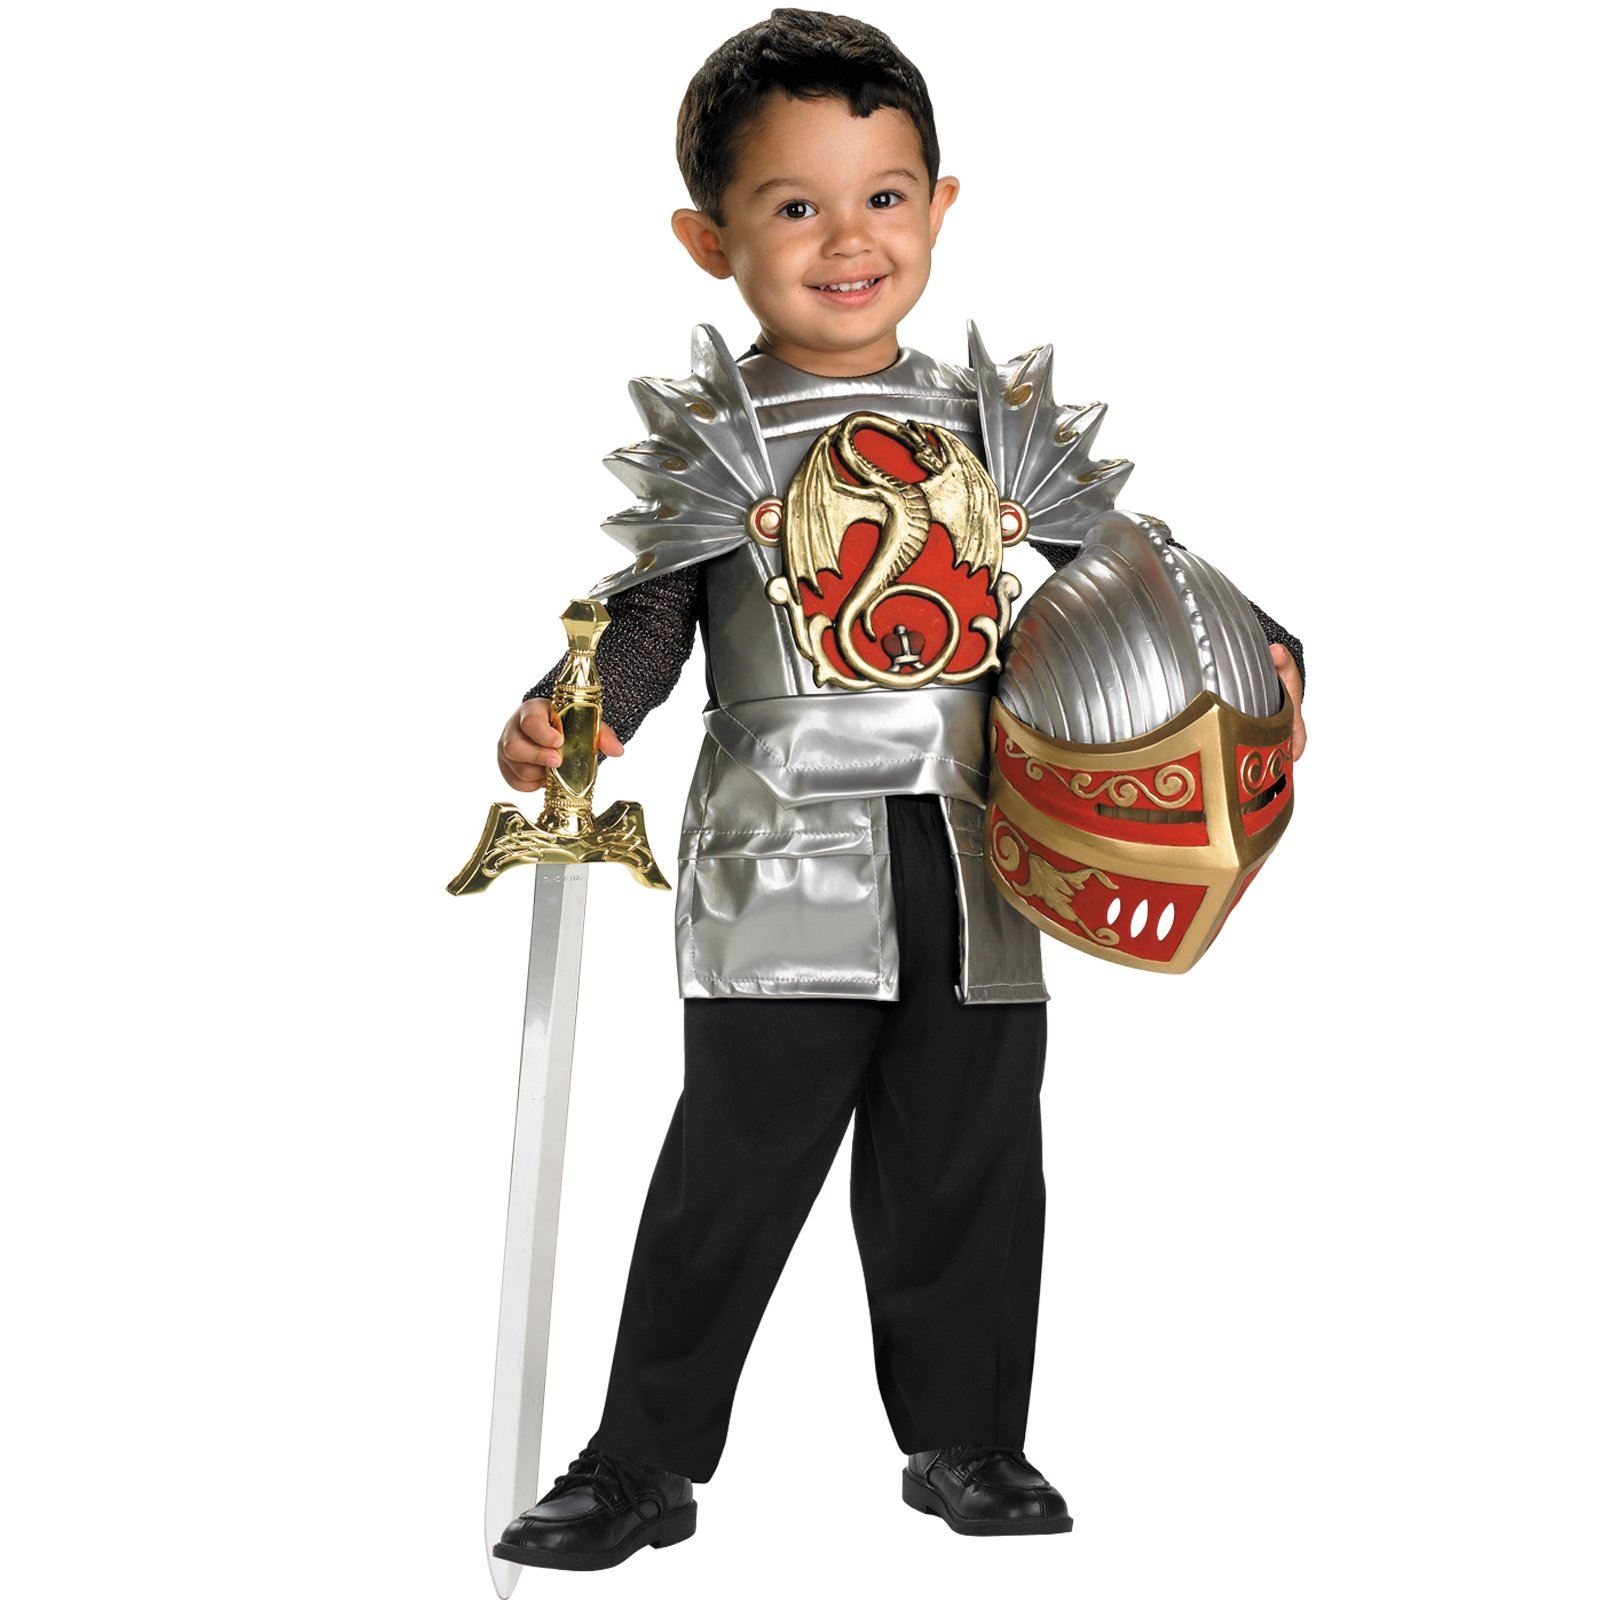 this lil hombre lmbs up to yo gurl, what do you do? : ChivalryGame